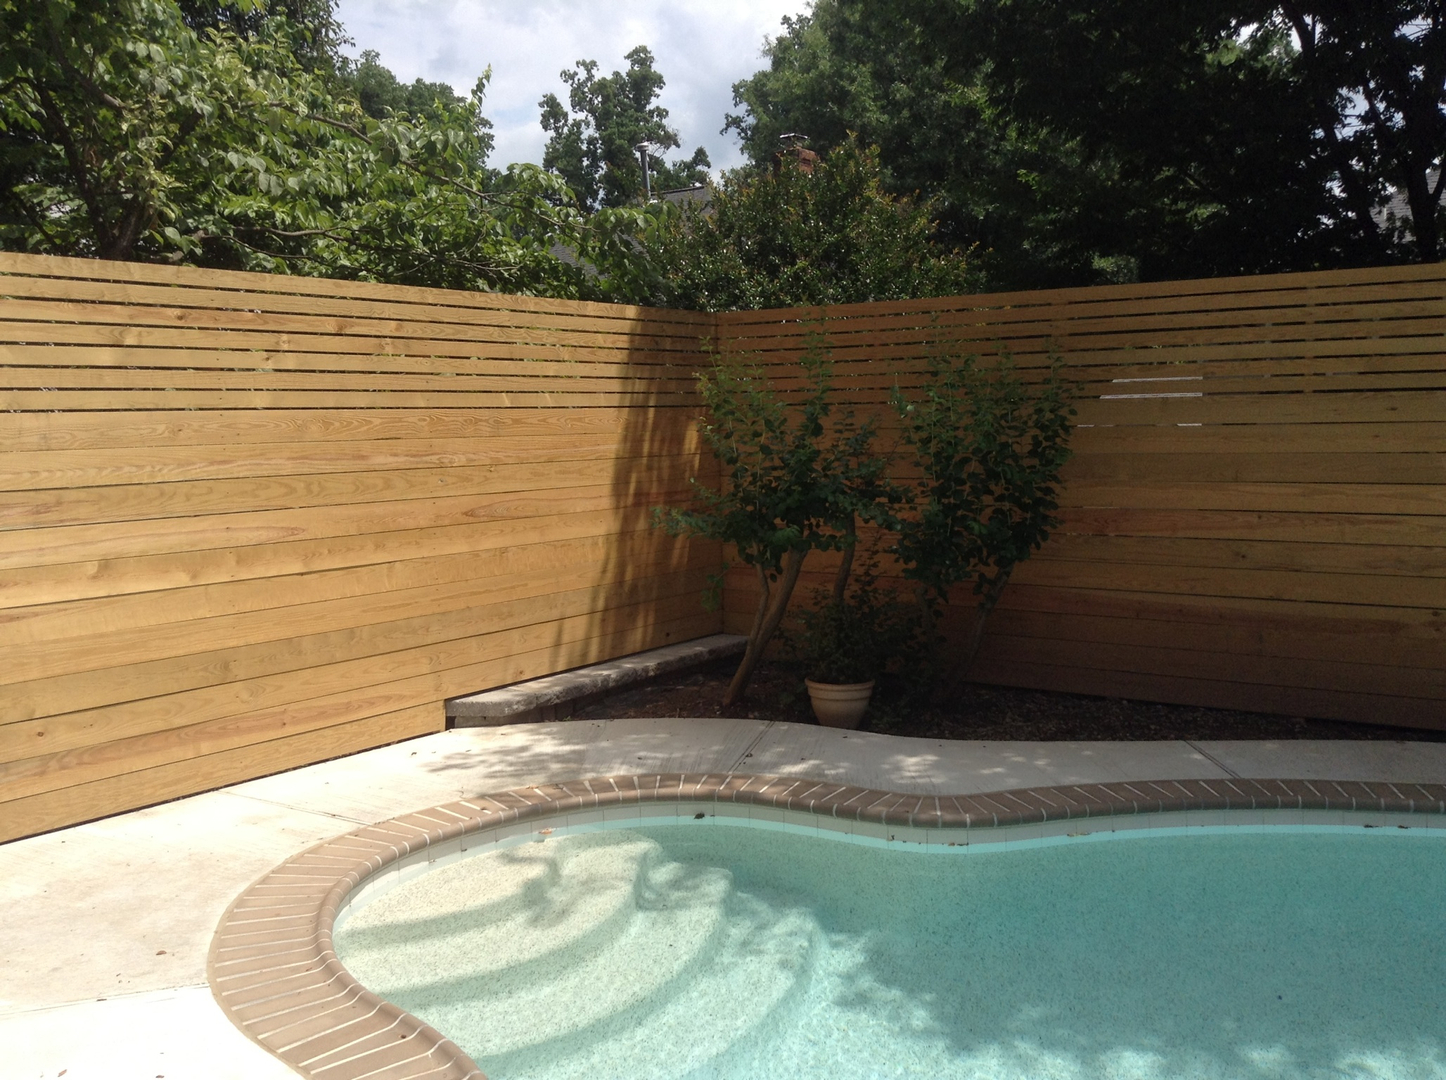 Pool Privacy Fence privacy fences - lions fence